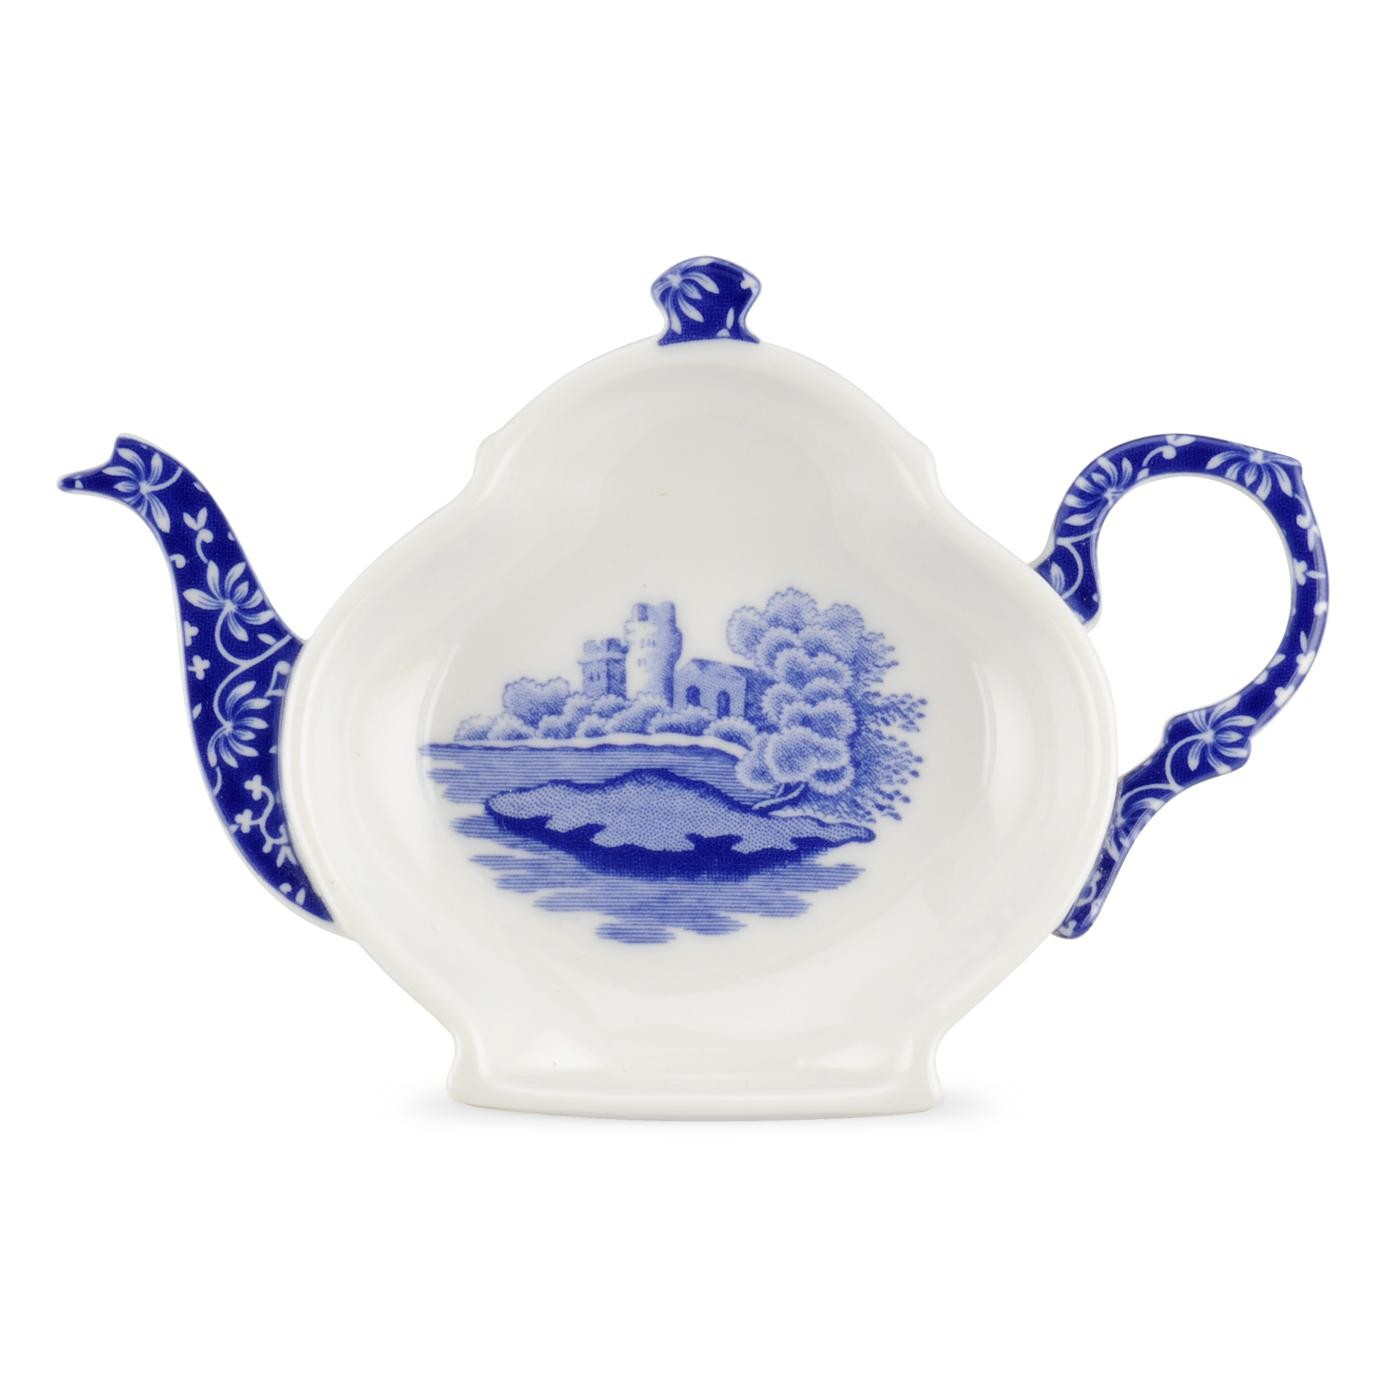 Spode Teabag Holder